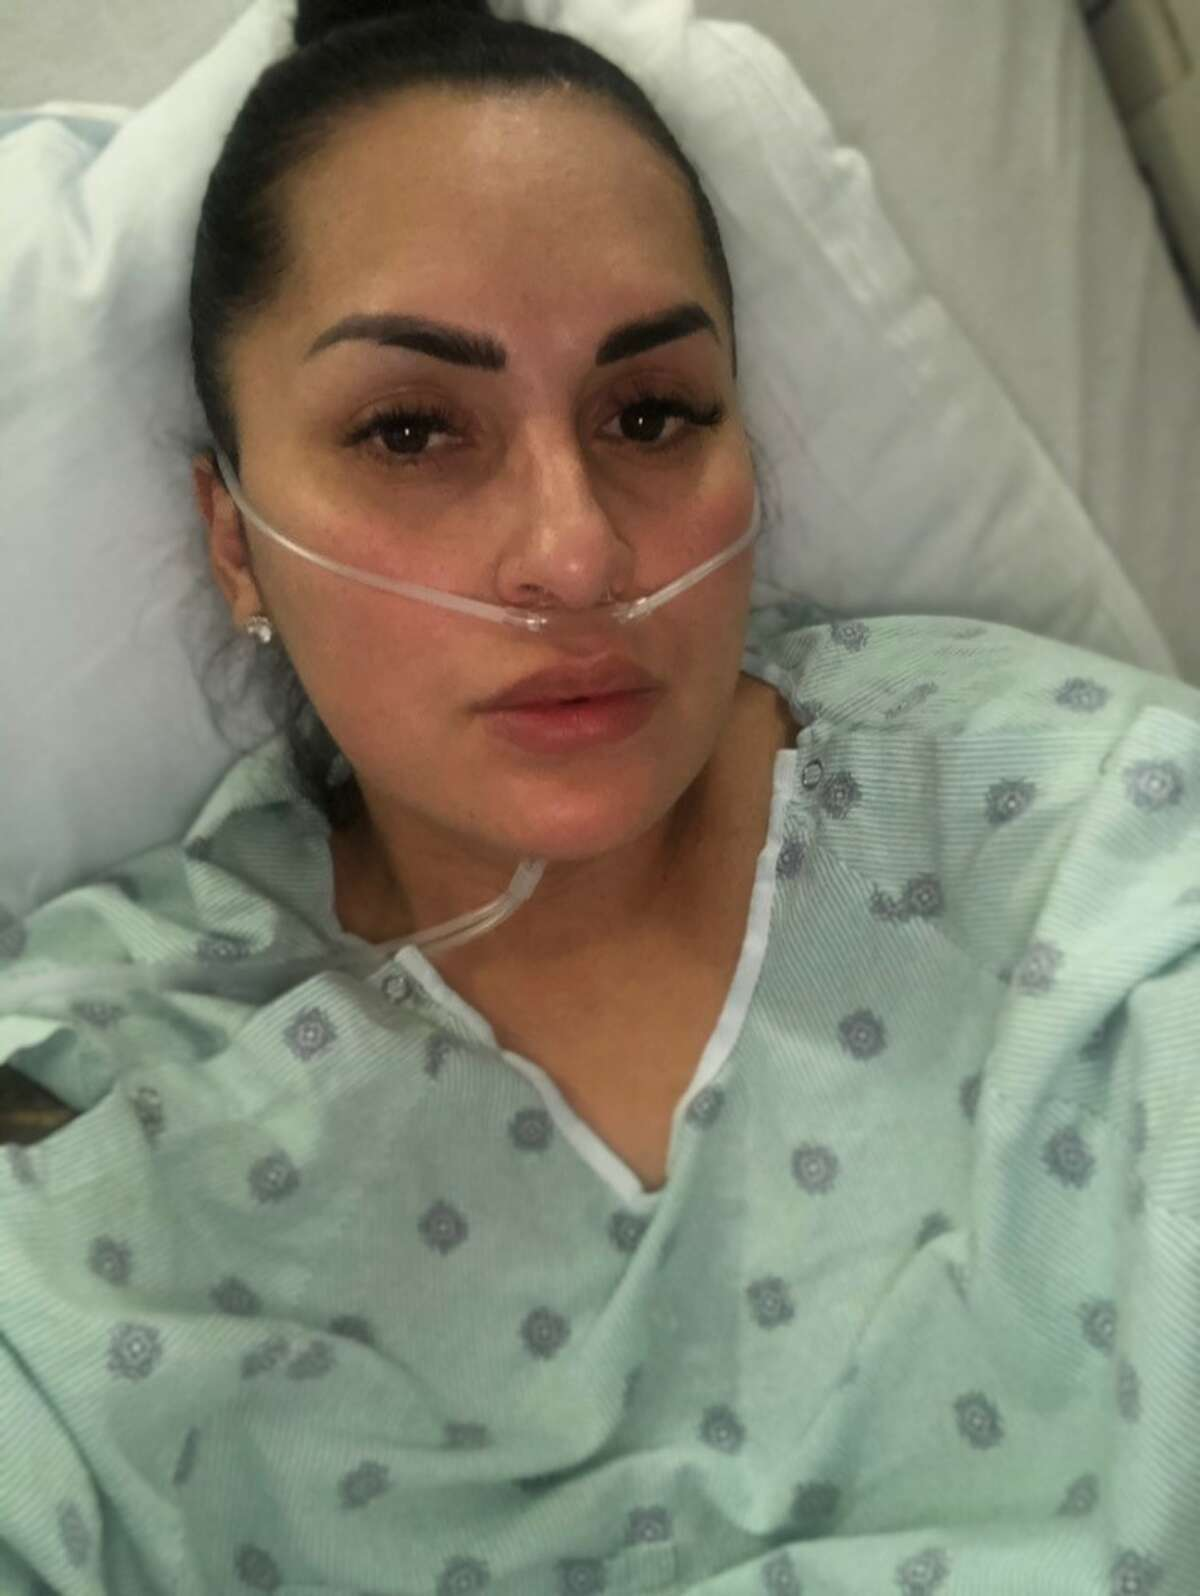 Houston mom, Esbedy Reyes, survived one of the worst experiences of her life. Pregnant while fighting COVID-19, Reyes shares what kept her going during this battle